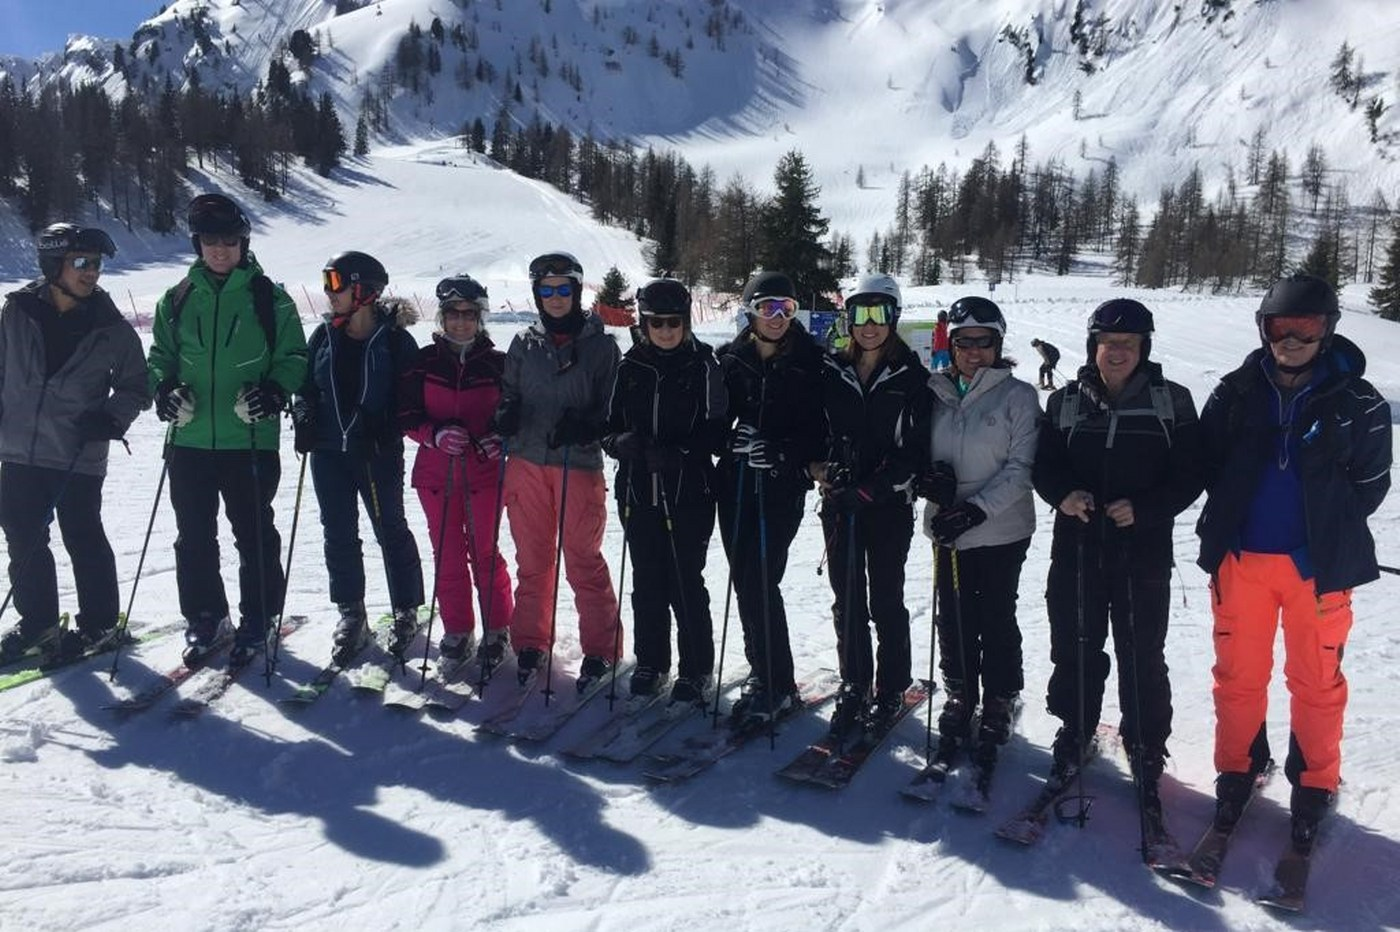 singles holiday over 40s - skiing trip with SPoH March 2019